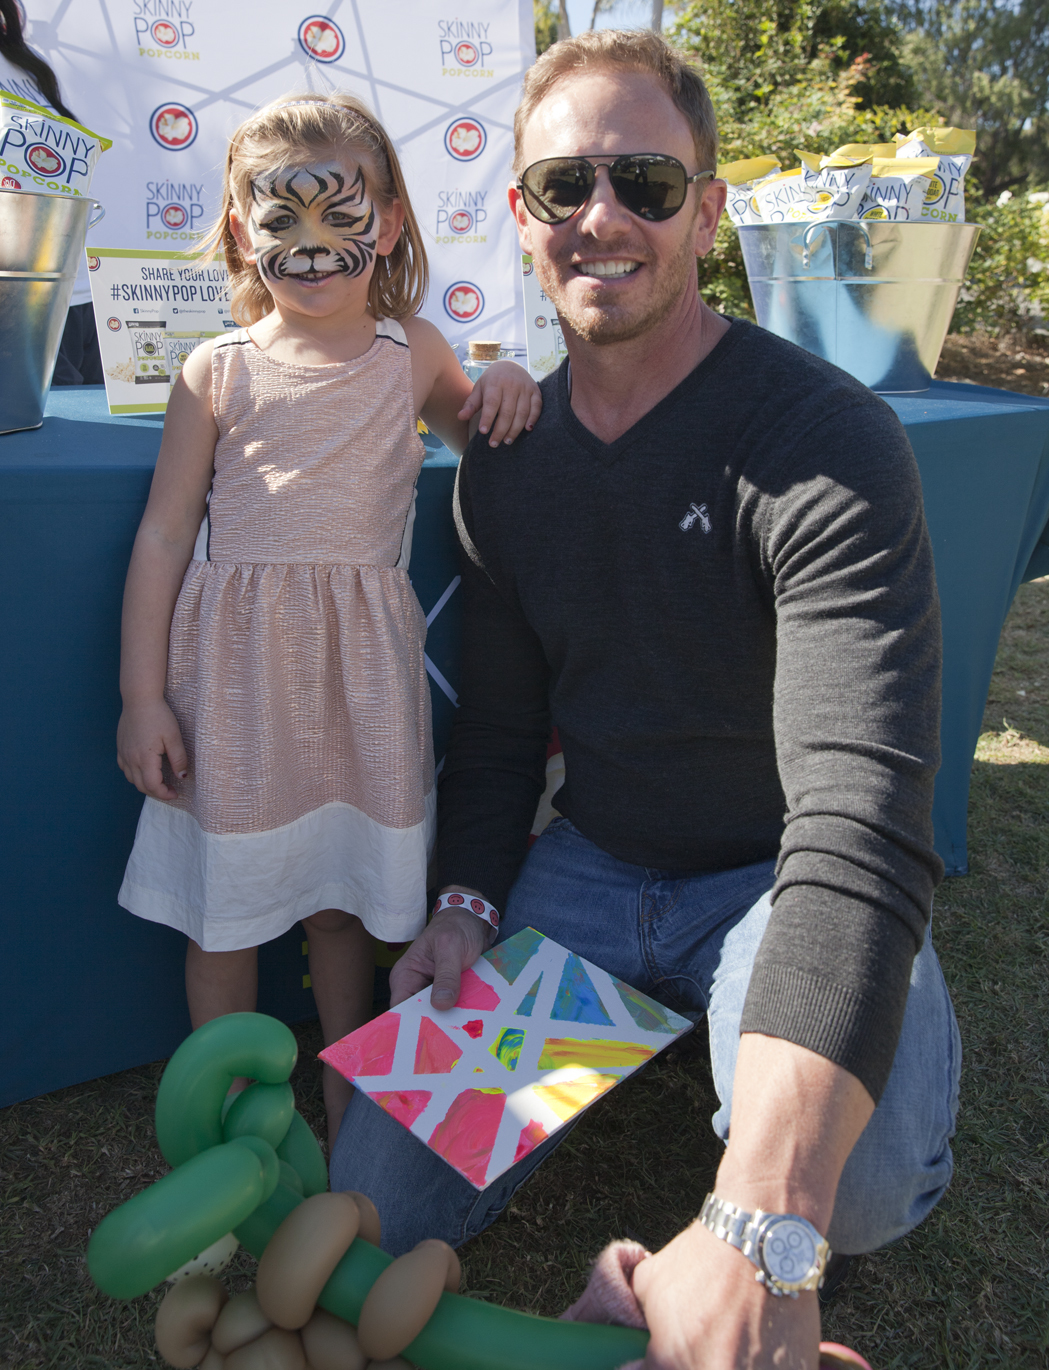 Ian Ziering on what his 5 year old was attempting to negotiate for: